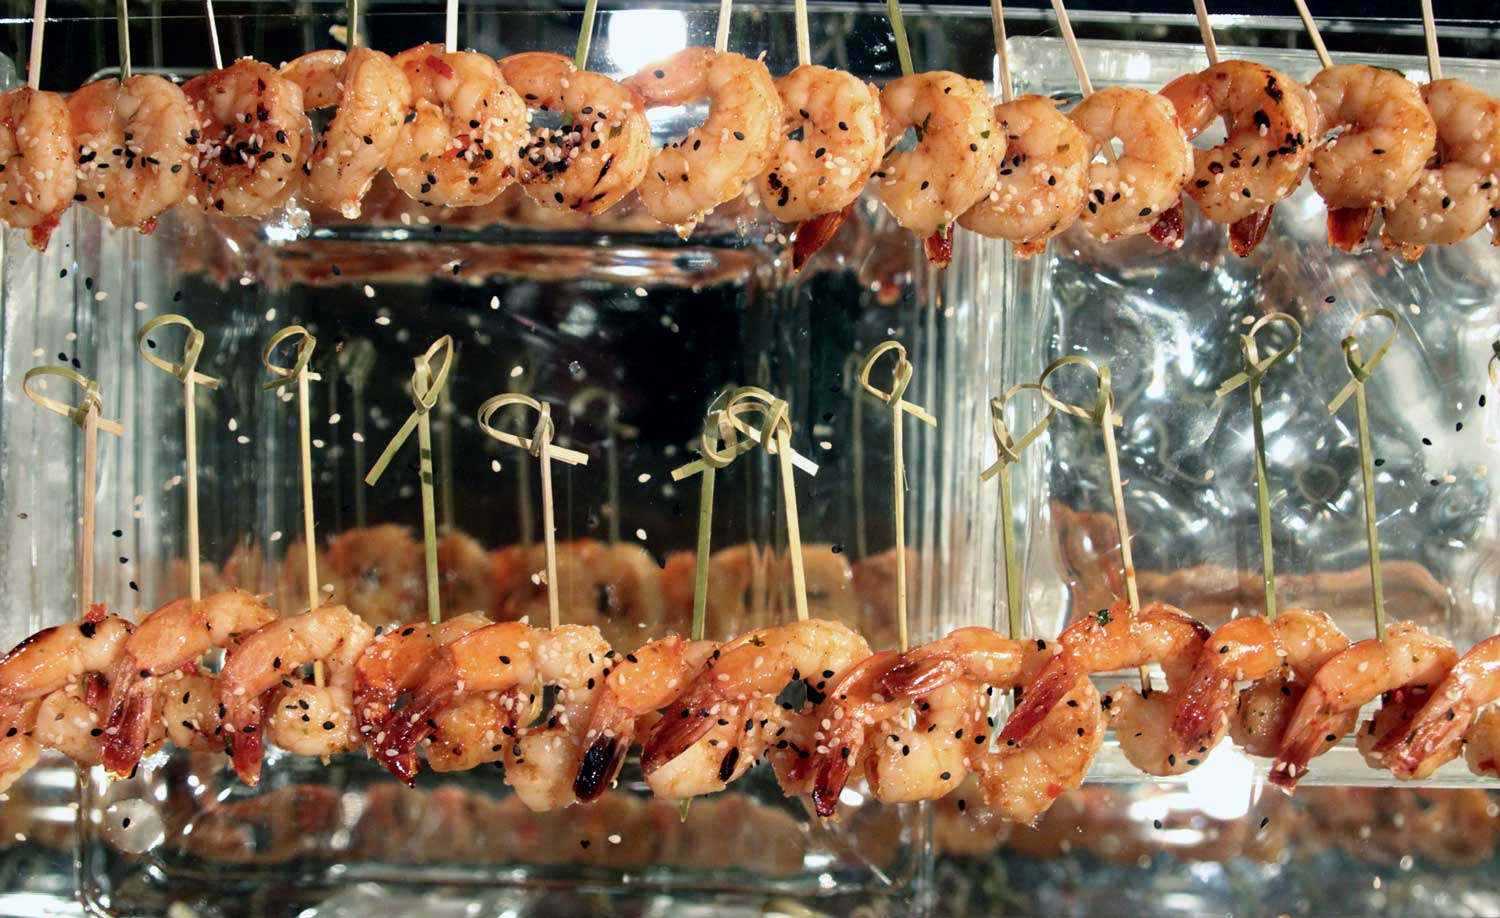 Sweet Thai Chili Grilled Shrimp prepared by Harmony Hall Restaurant